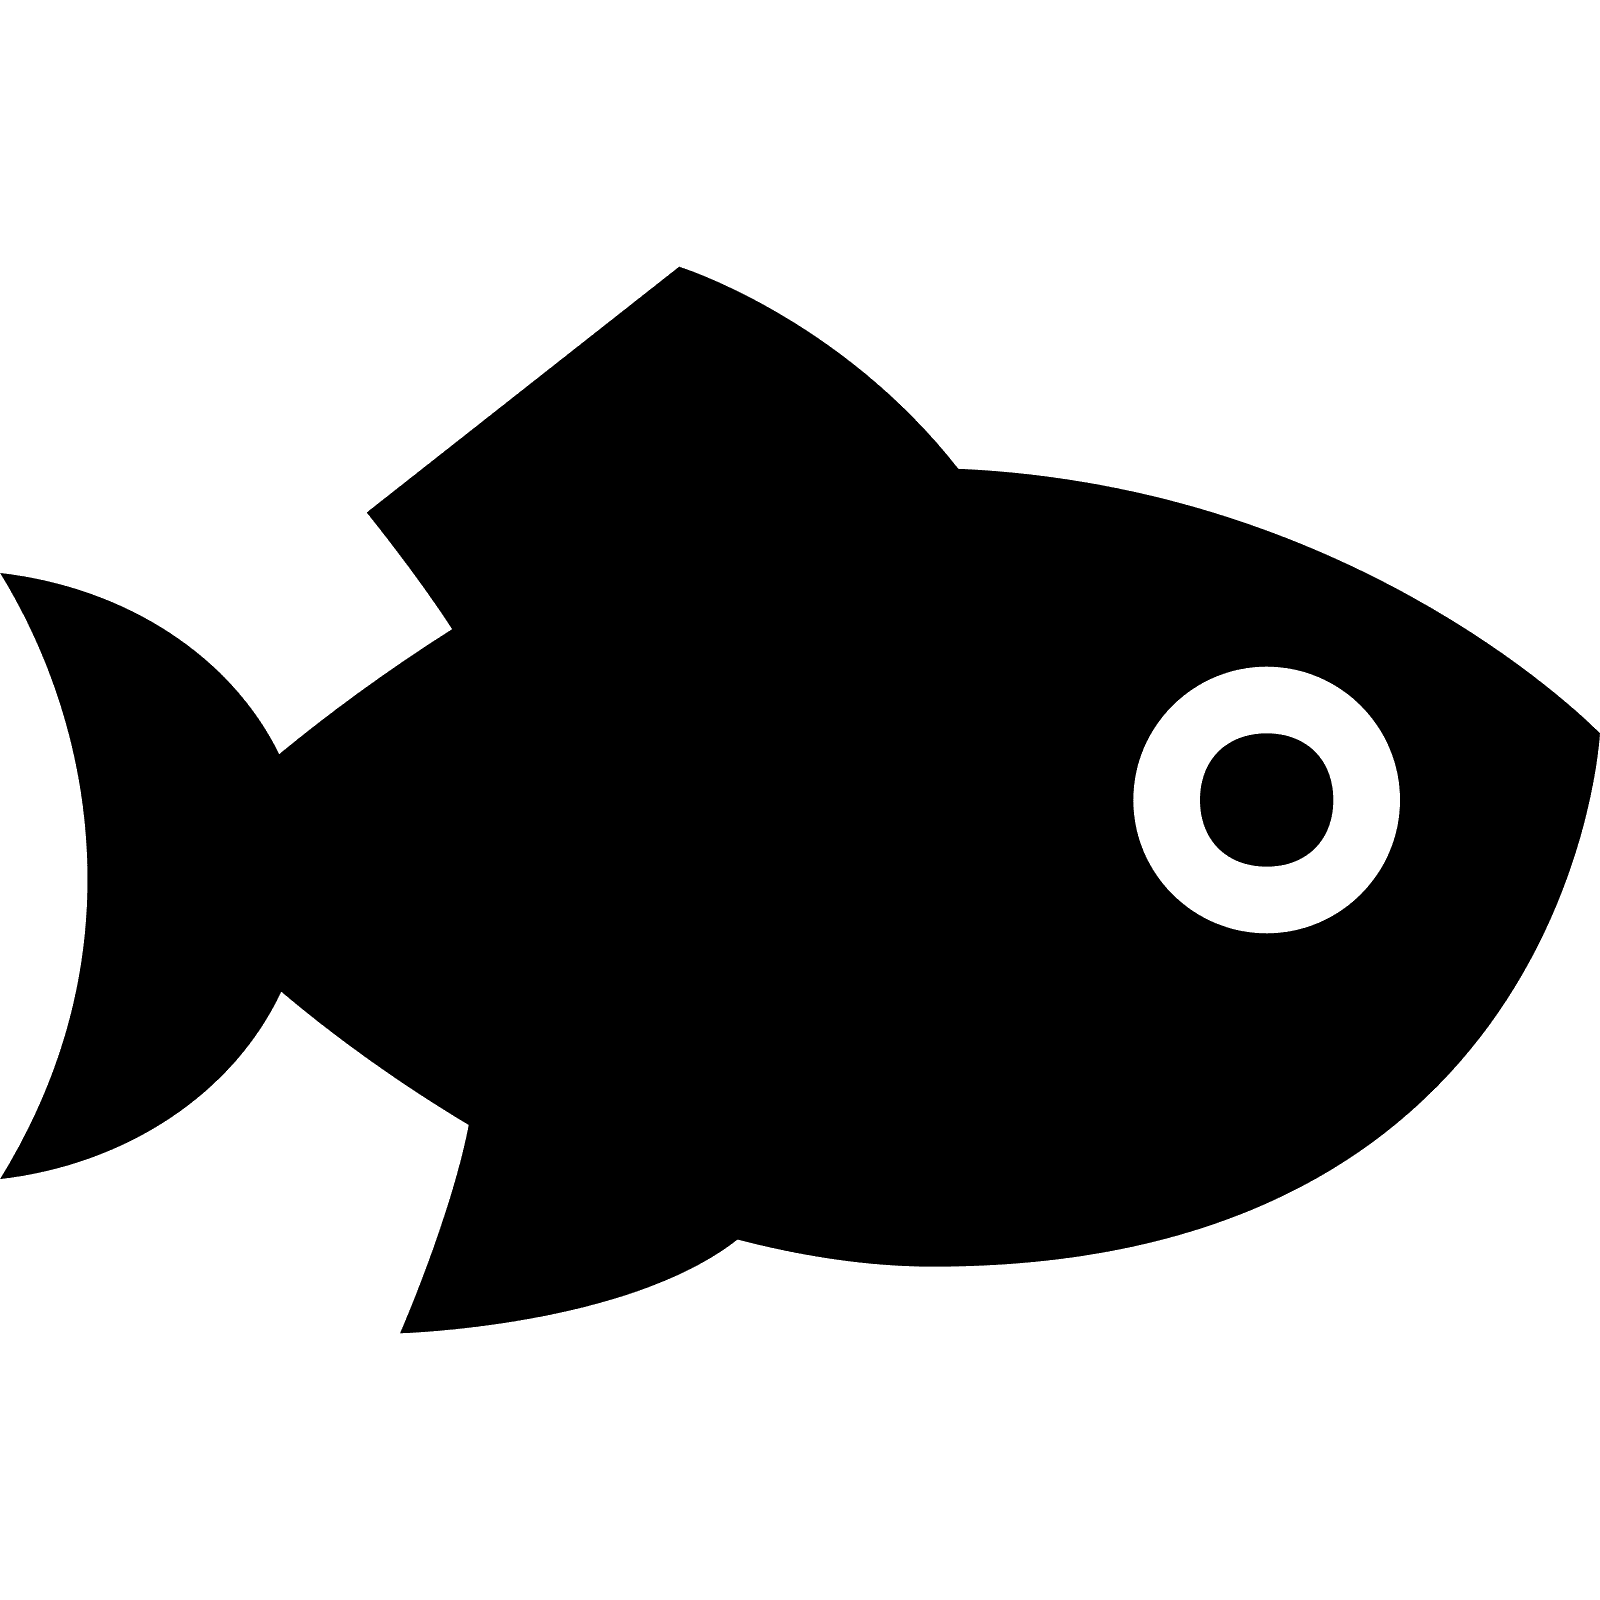 Download Computer Icons Fishing Food Silhouettes Png Download 1600 1600 Free Transparent Computer Icons Png Download Clip Art Library